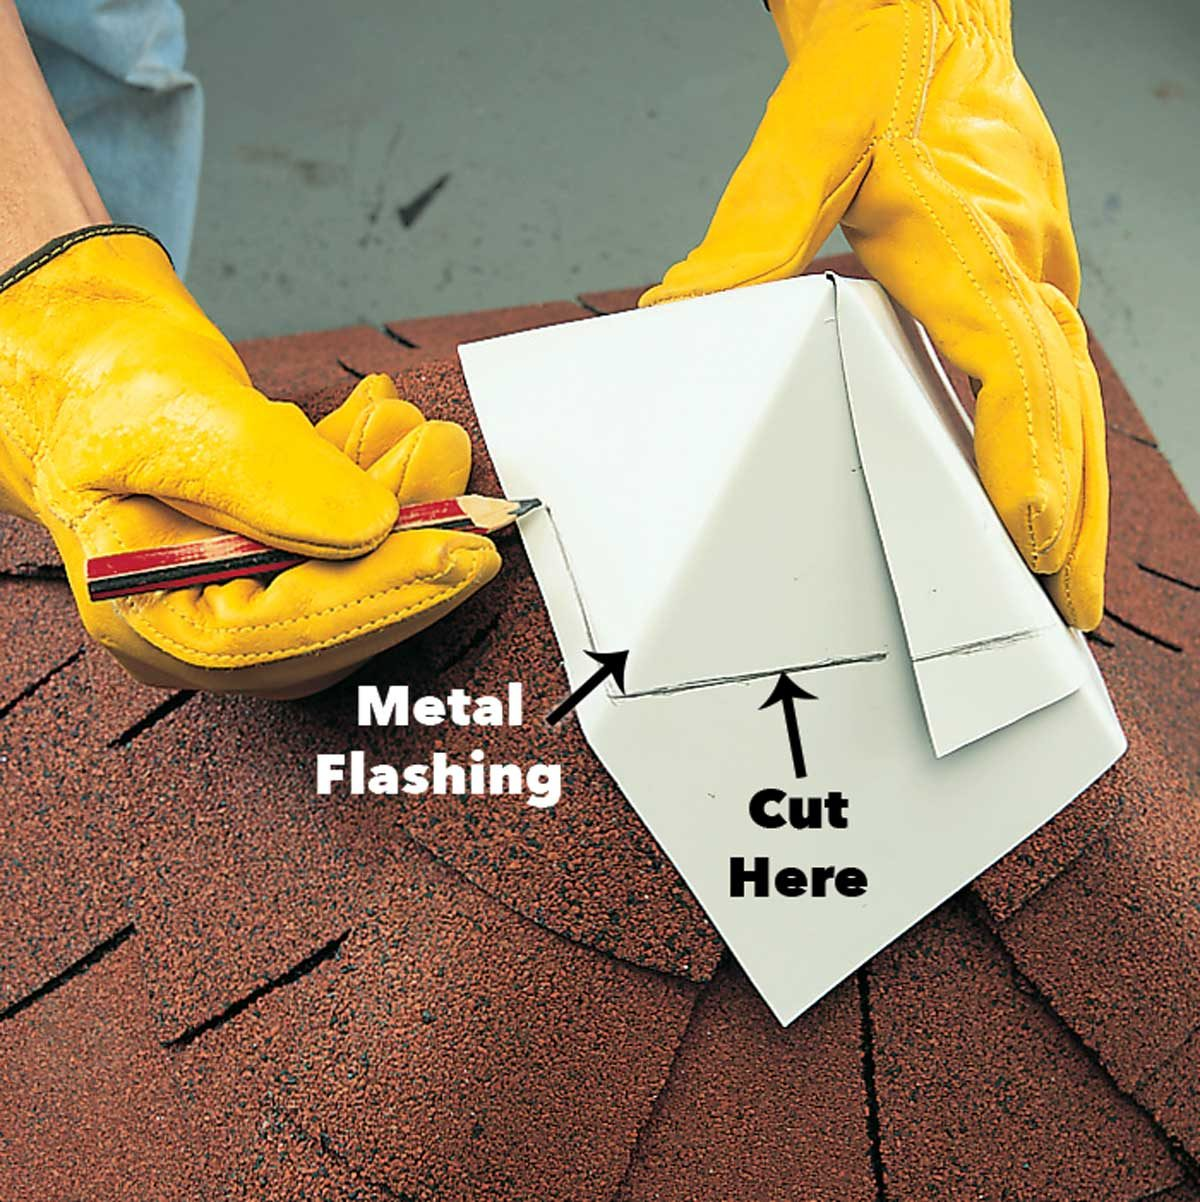 Cap the roof with flashing cupola